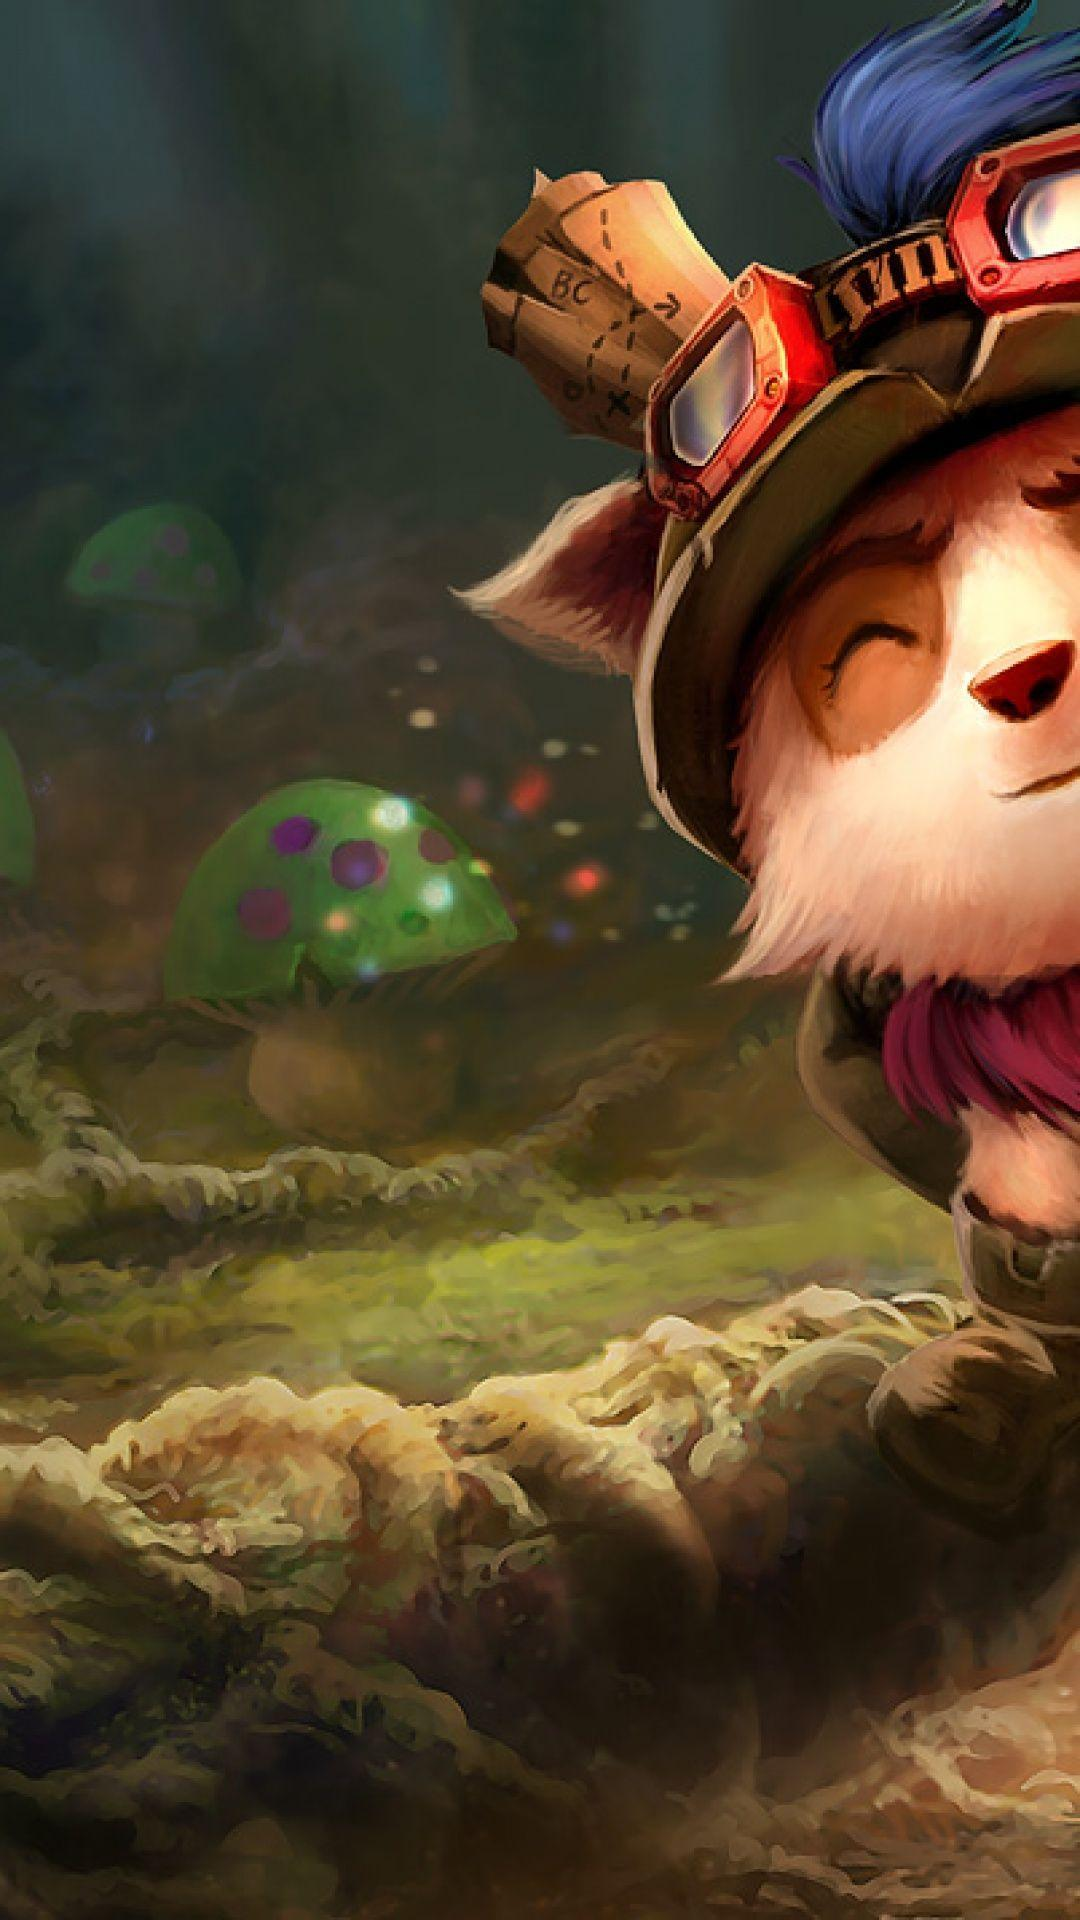 teemo wallpaper - photo #15